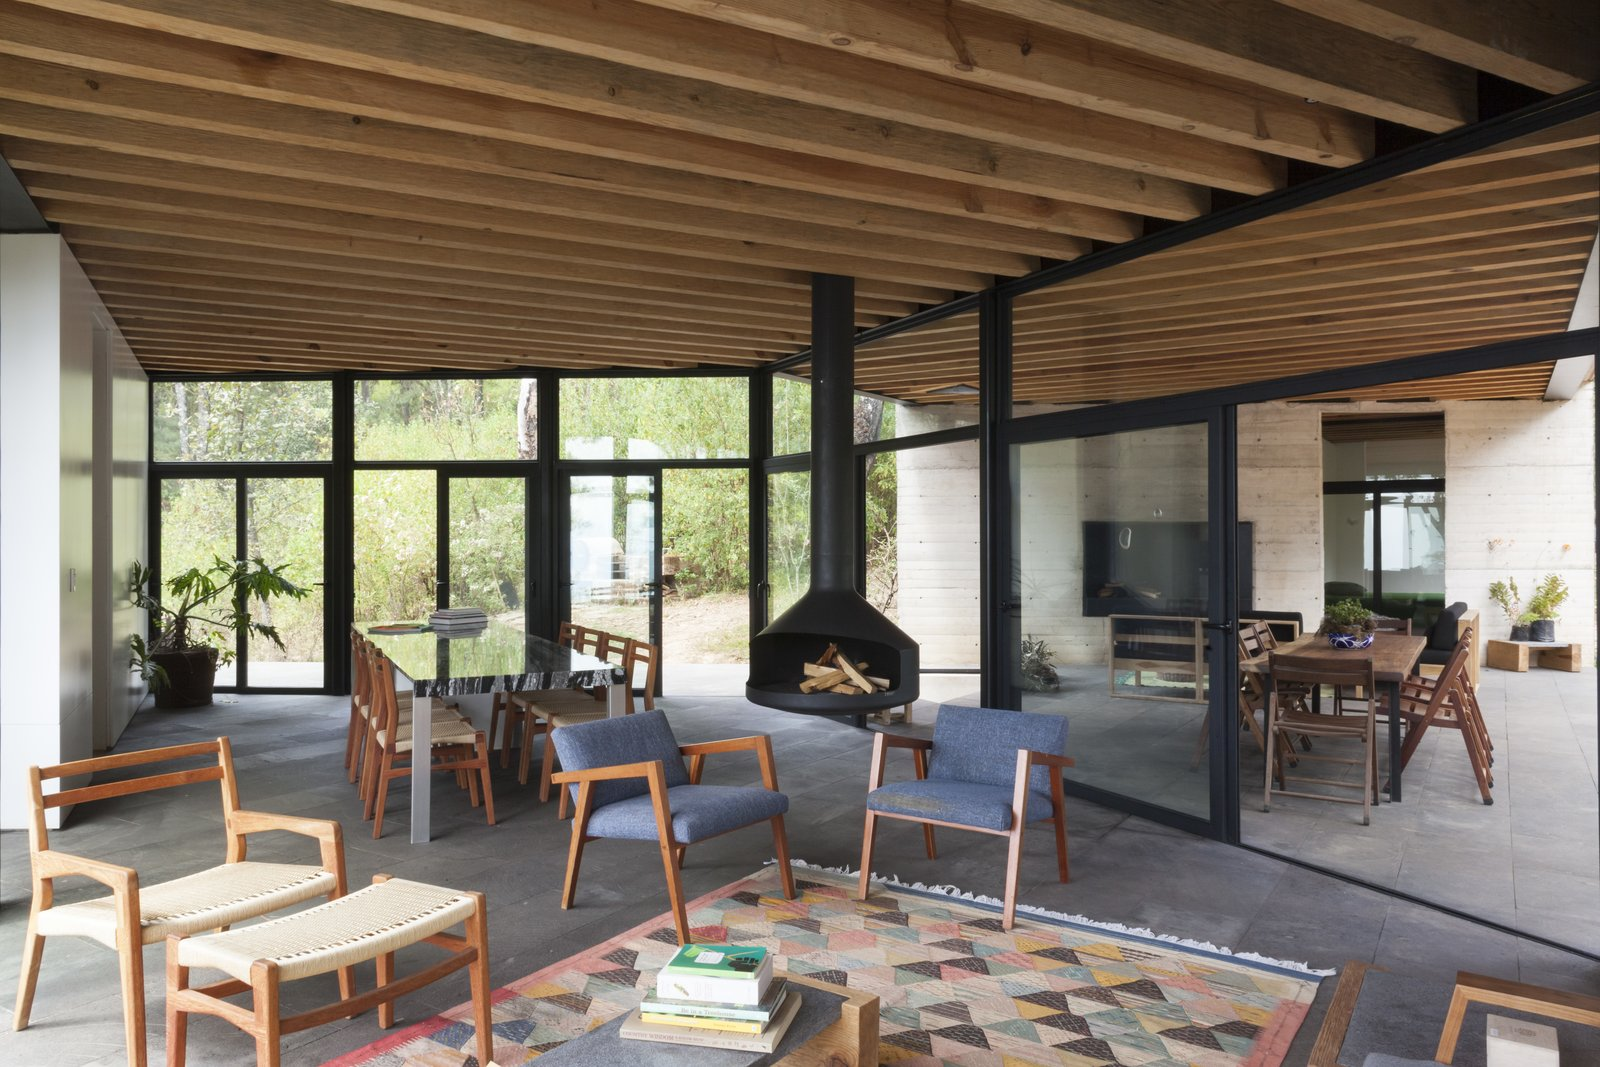 Living, Chair, Coffee Tables, Hanging, Ottomans, Concrete, Rug, and Table The ceiling beams have been left exposed to create a stark contrast with the black framing.  Best Living Hanging Table Photos from Upcycled Trees Cloak This Modern Mexican Home